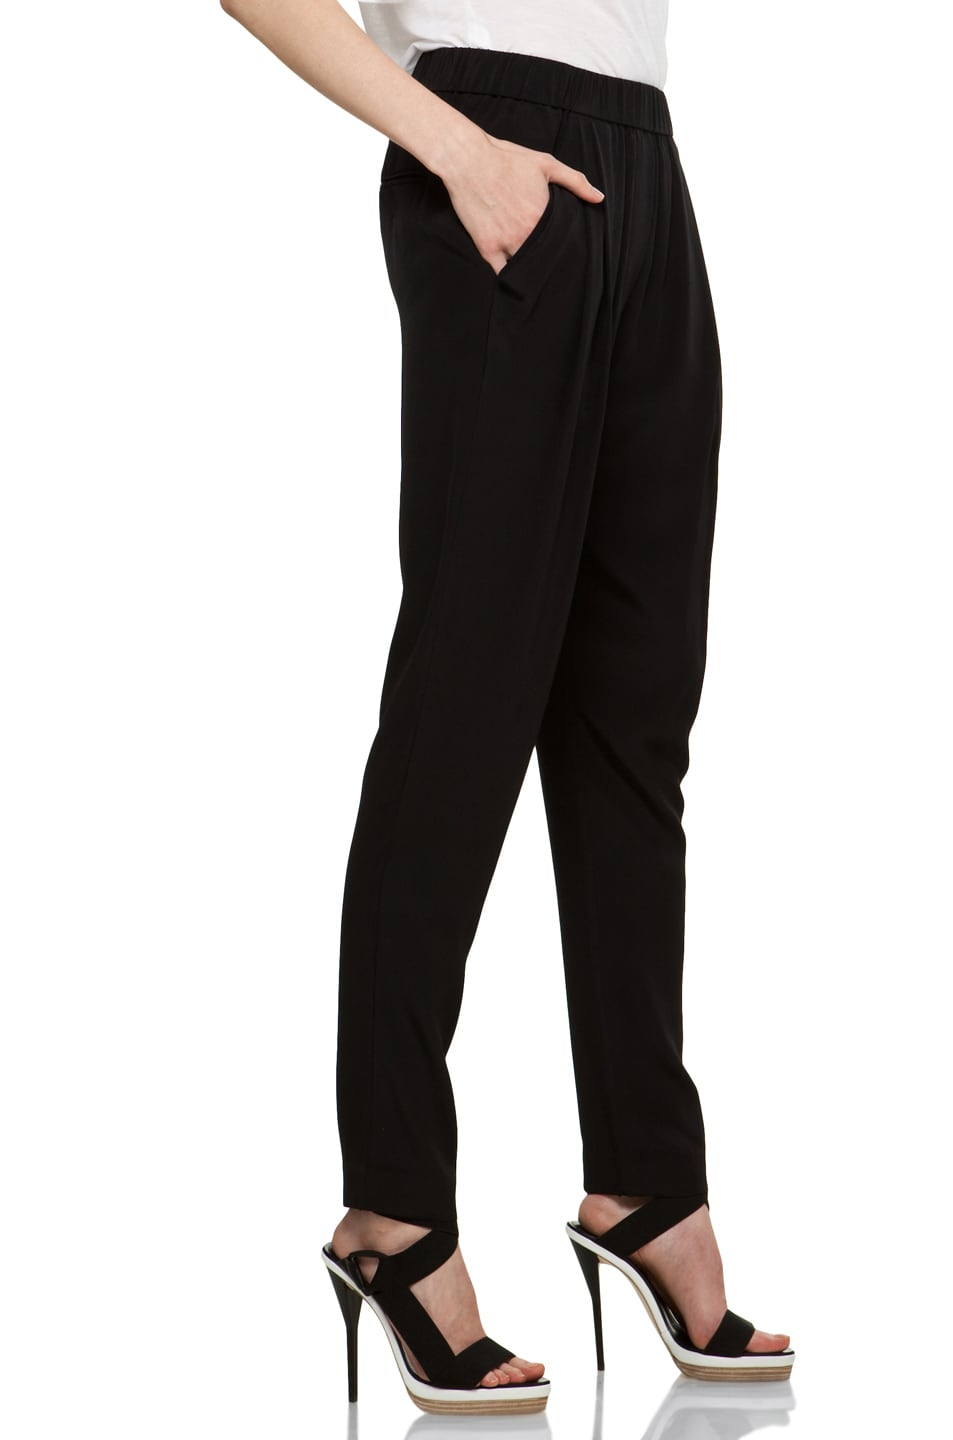 Image 3 of 3.1 phillip lim Draped Pocket Silk Trouser in Black